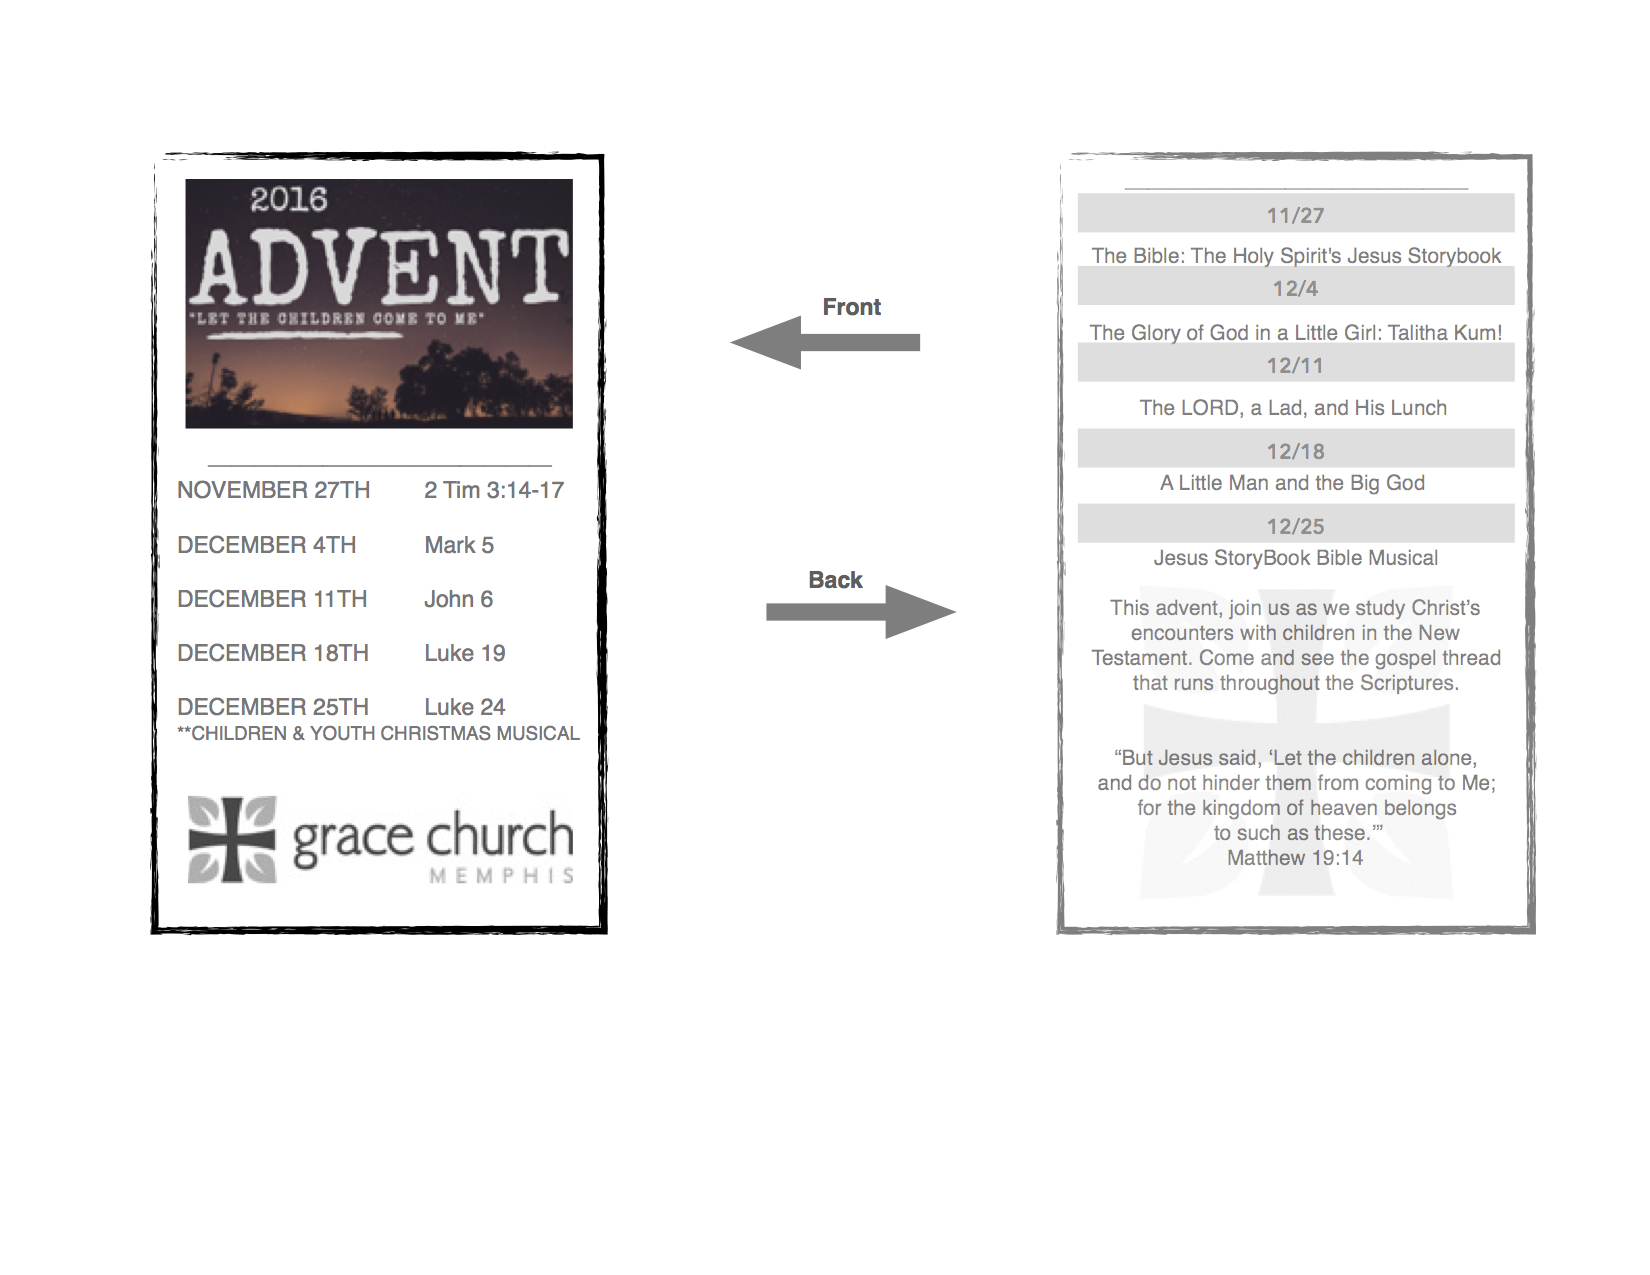 2016-advent-card-website